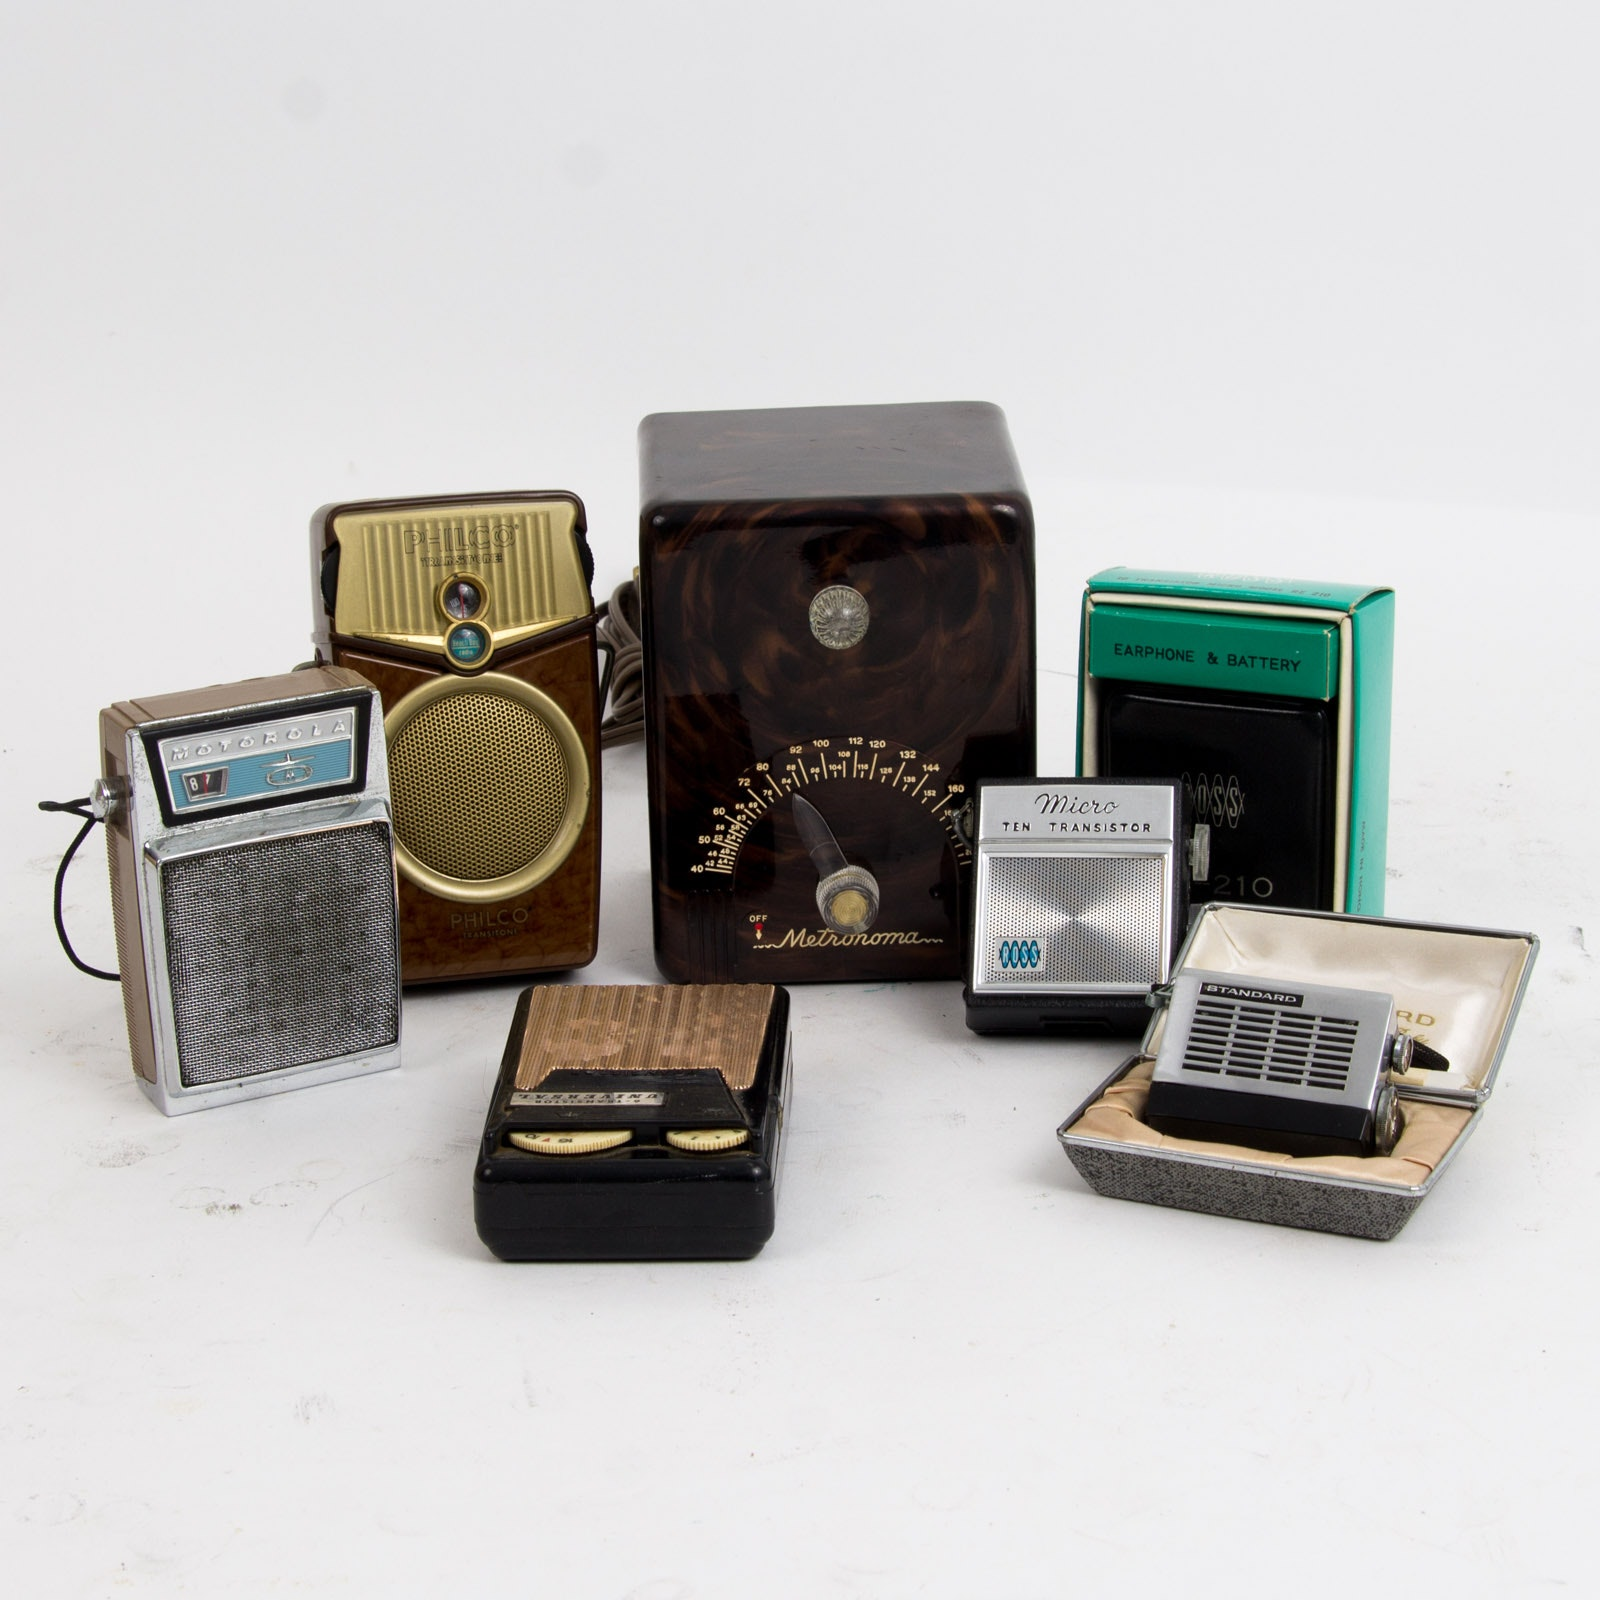 Variety of Five Vintage Transistor Radios and Crystalab Metronoma